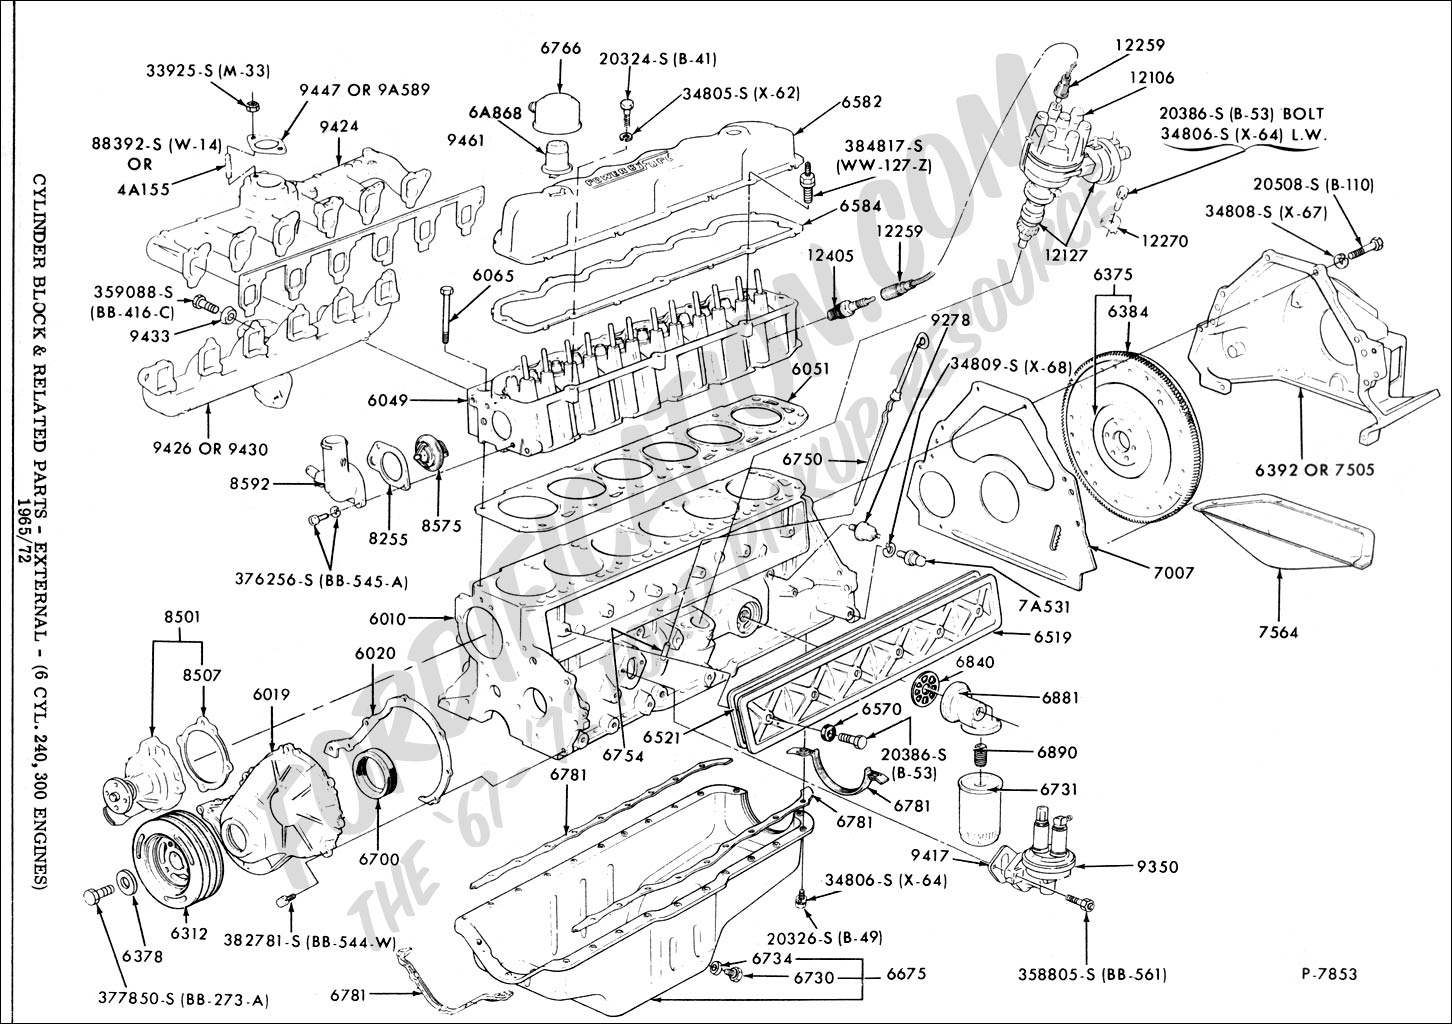 2001 Nissan Quest Thermostat Location moreover Toyota 2 Timing Marks Diagram additionally 1098391 Oil Pump Location And Replacement as well Motor Ford 5 4 Triton Acuum Diagram further 2005 Buick Rendezvous Wire Diagram. on 5 4 triton timing chain diagram